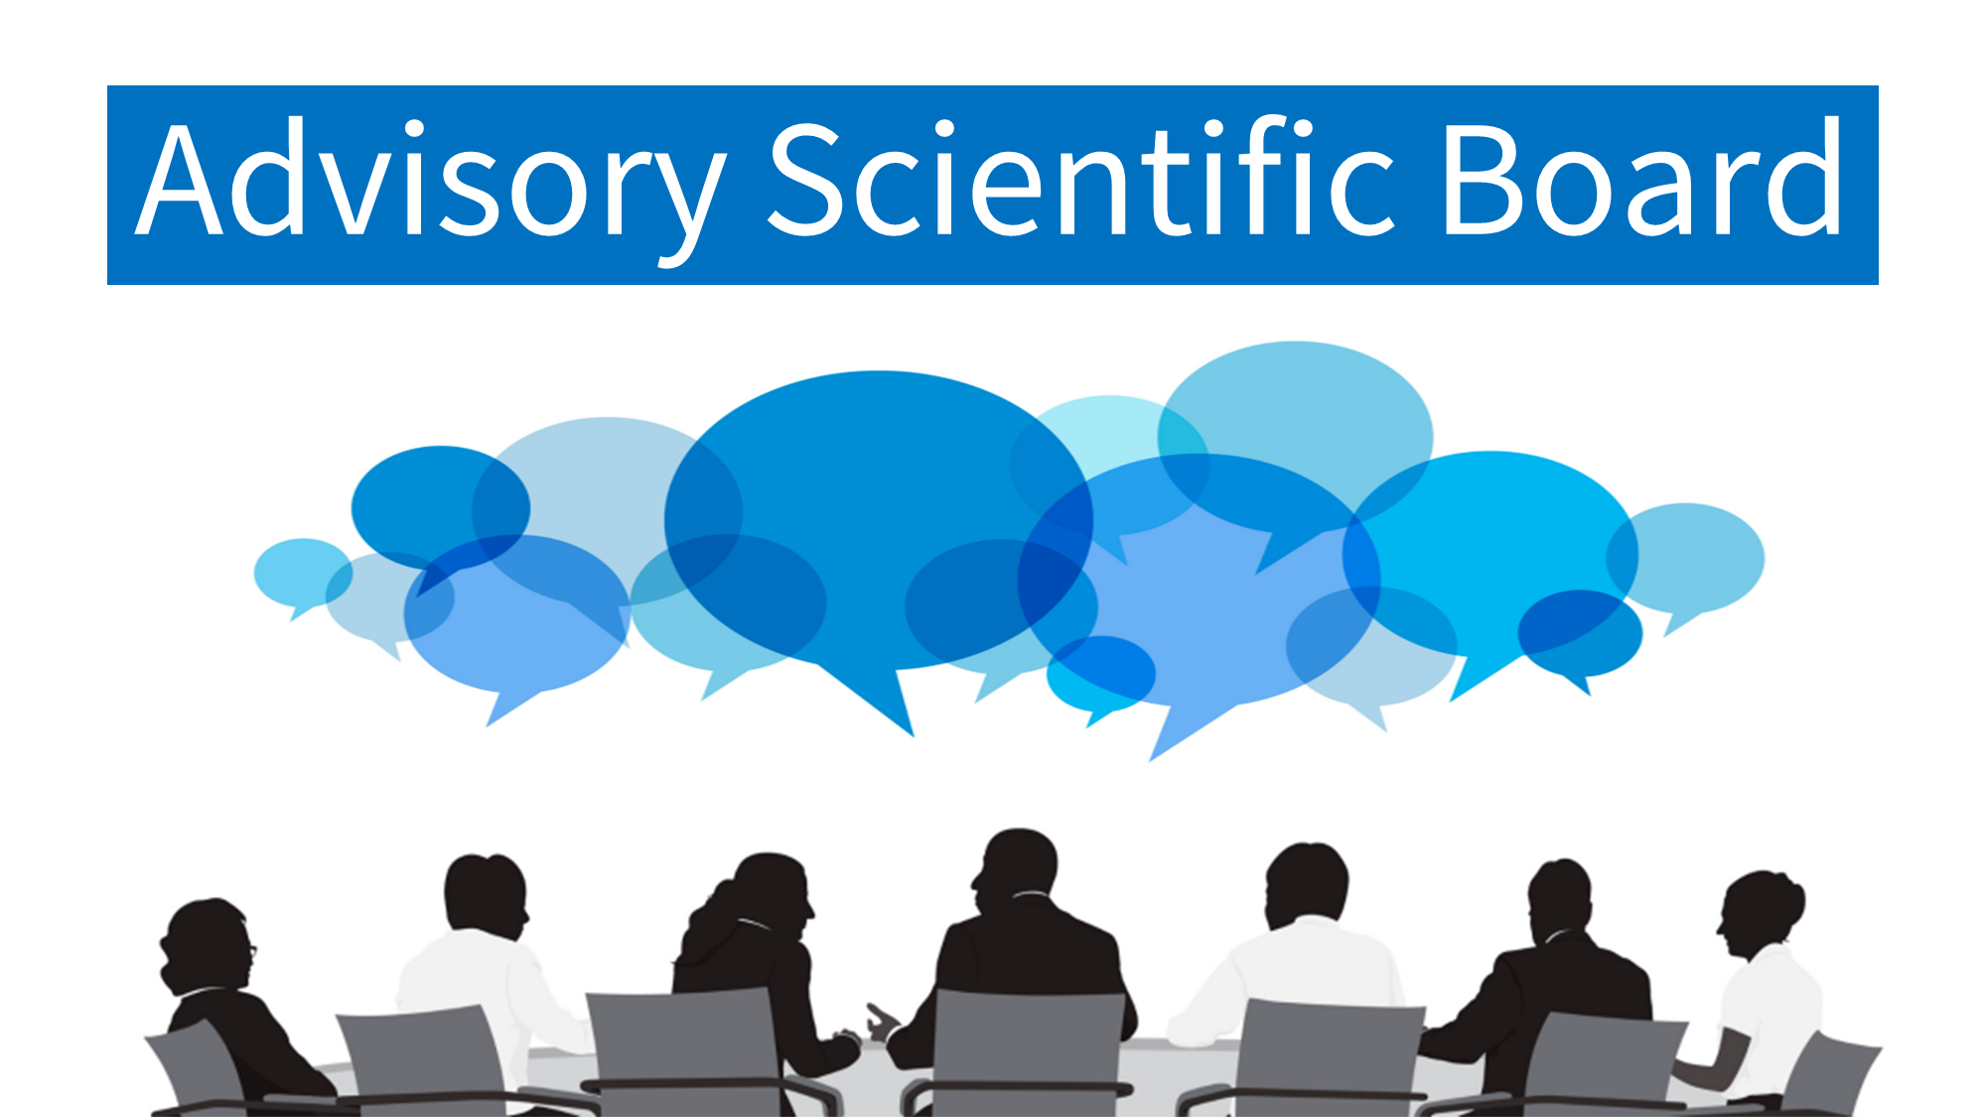 The Scientific Council of the Doctoral School of the University of Szczecin established the Advisory Scientific Board